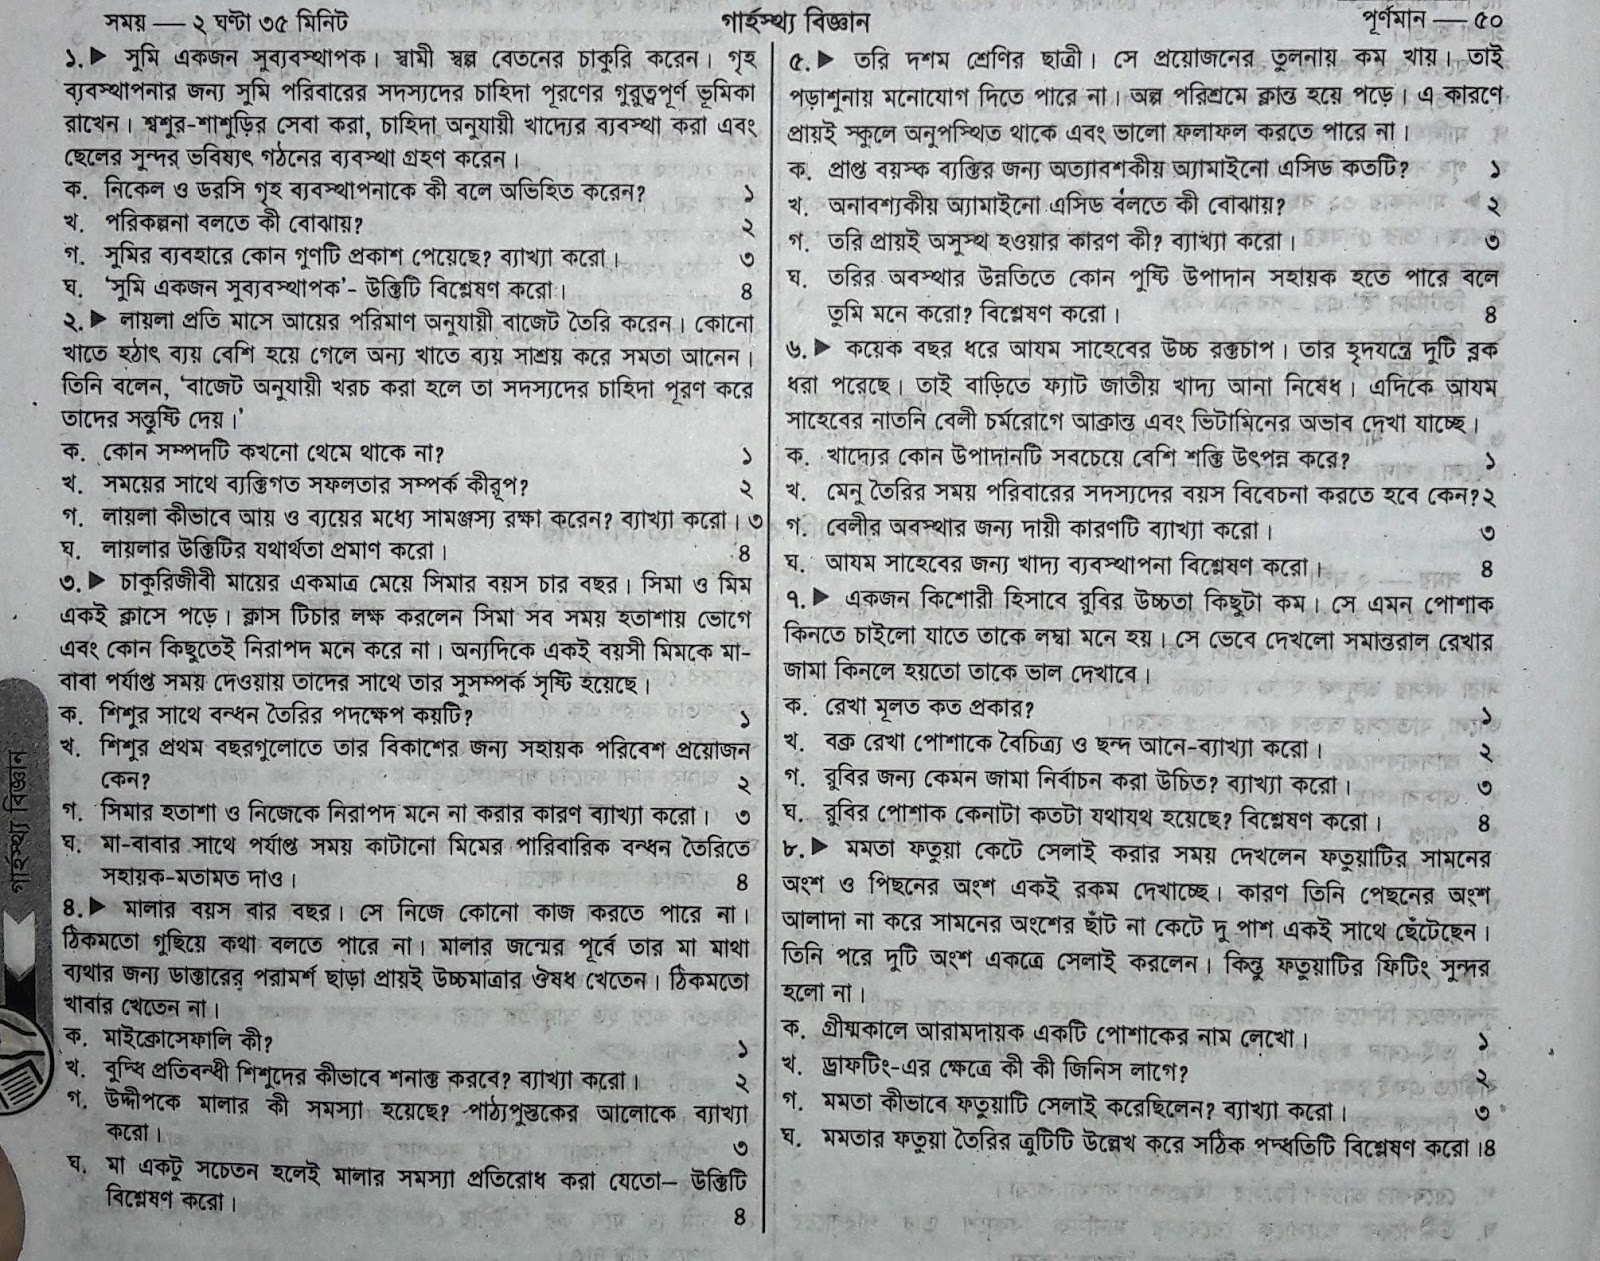 ssc Home Science suggestion, question paper, model question, mcq question, question pattern, syllabus for dhaka board, all boards